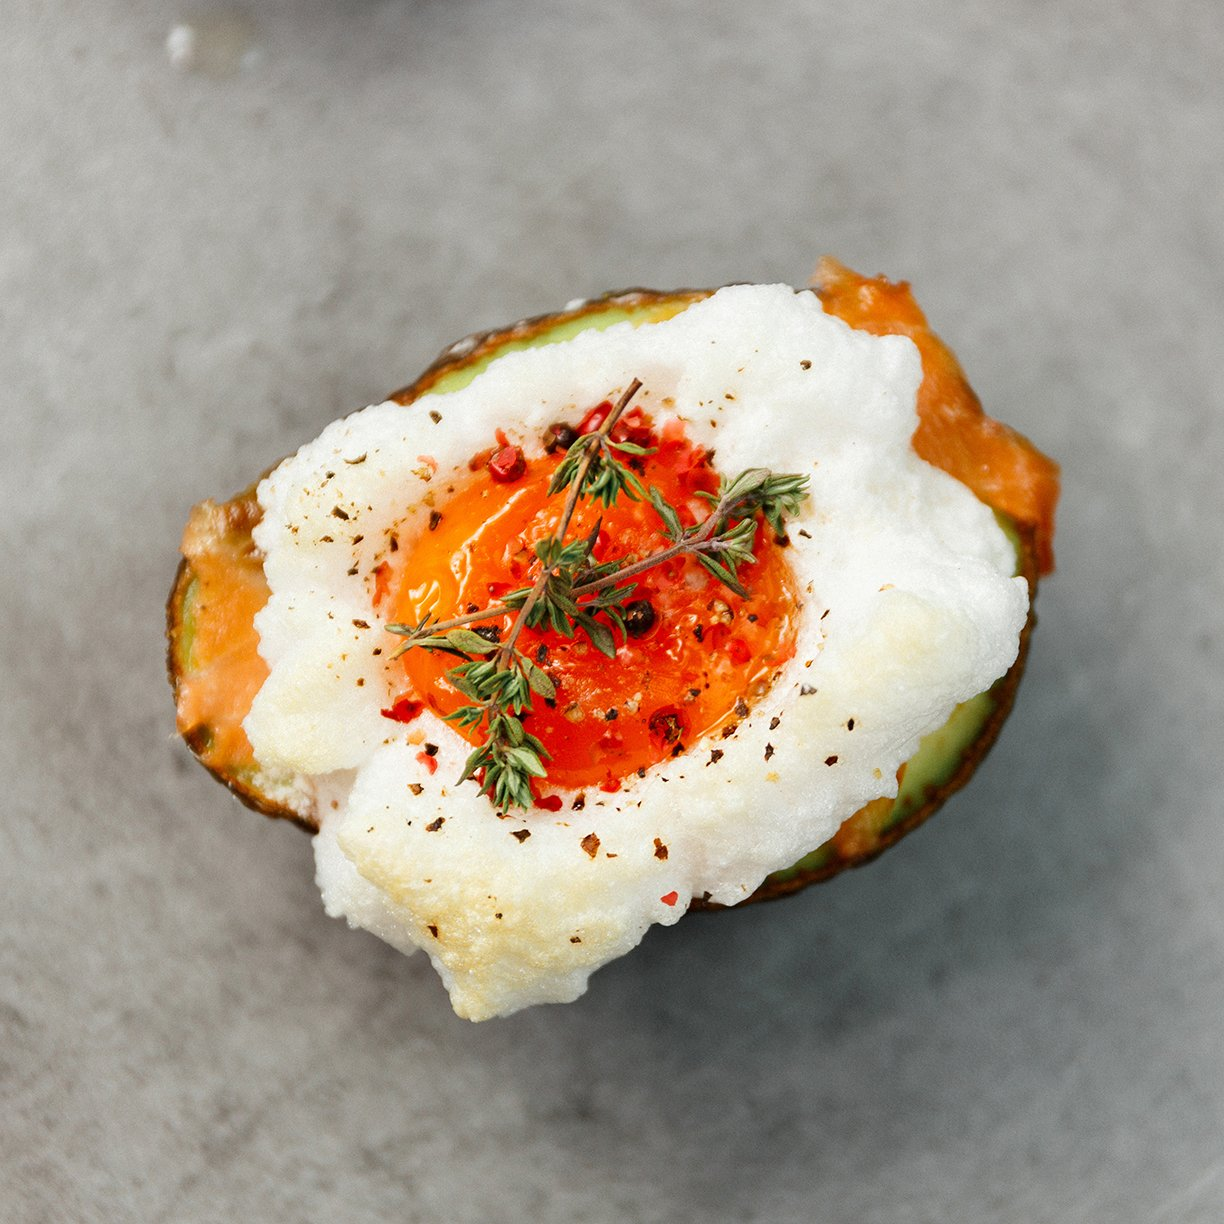 Stuffed Avocados with Salmon Devil Eggs